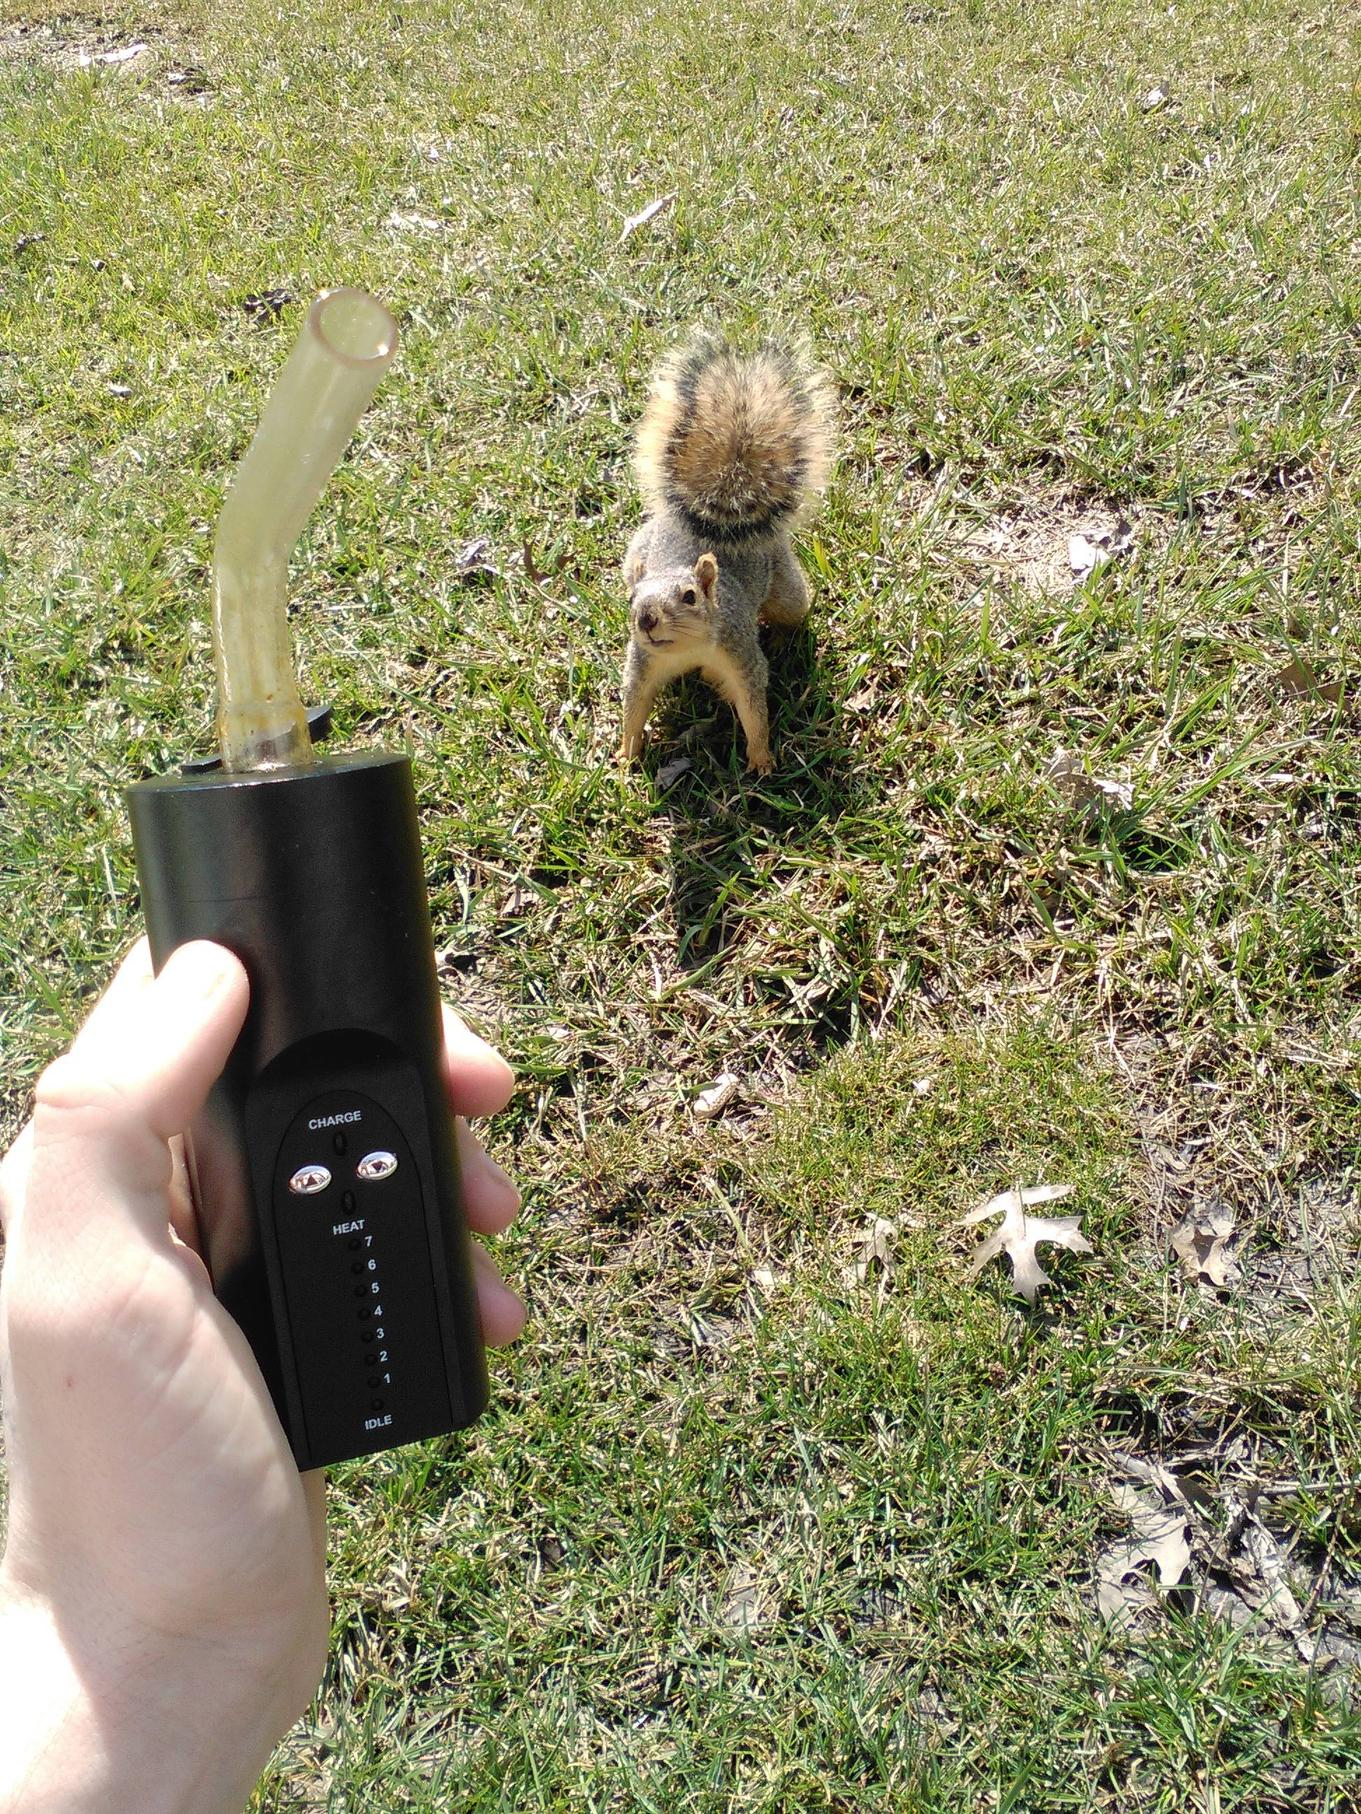 arizer extreme q review reddit